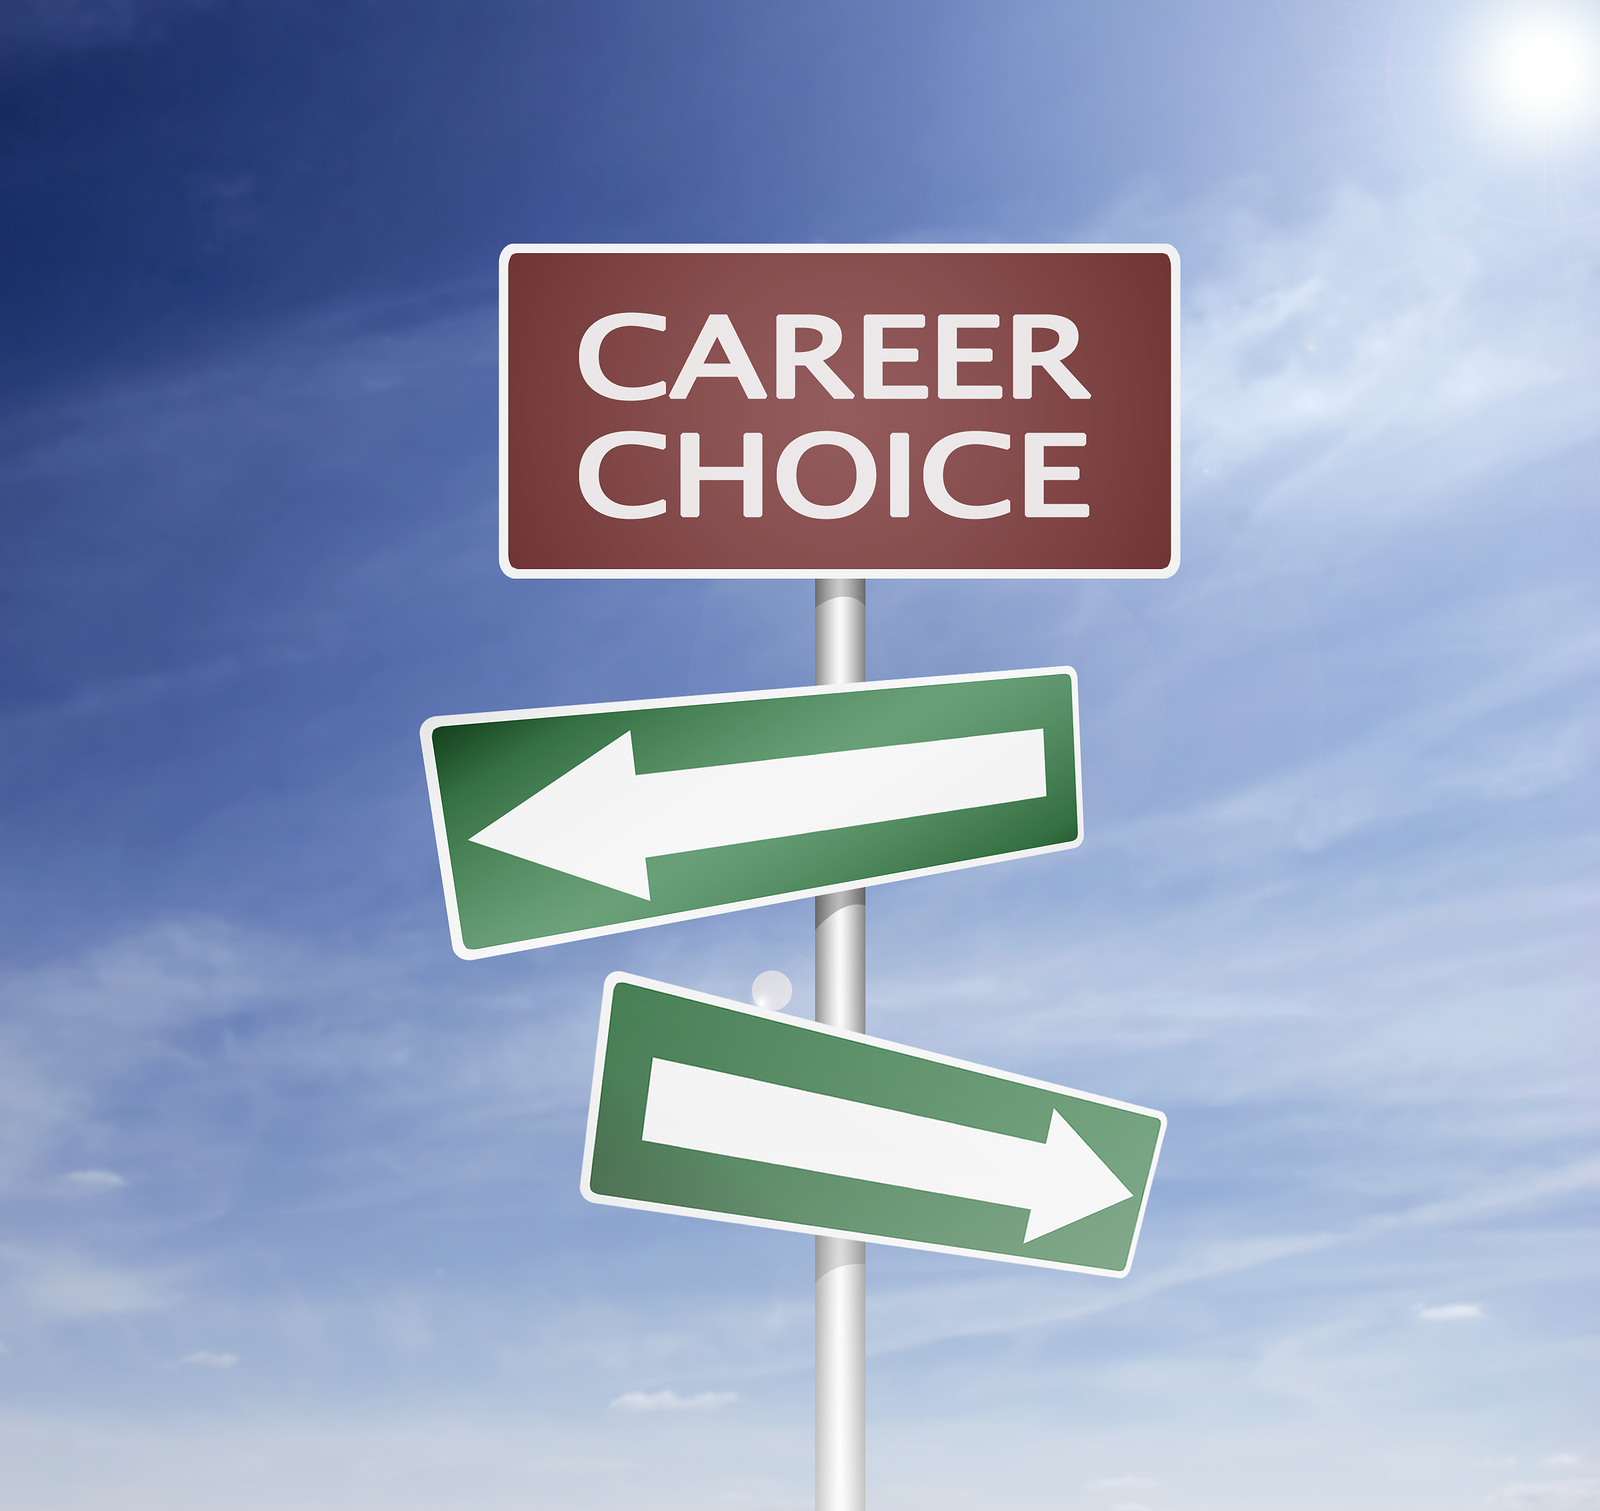 Career choices point in different directions. Finding the right one sometimes requires a change. (Photo retrieved from artiomp at bigstockphoto.com)